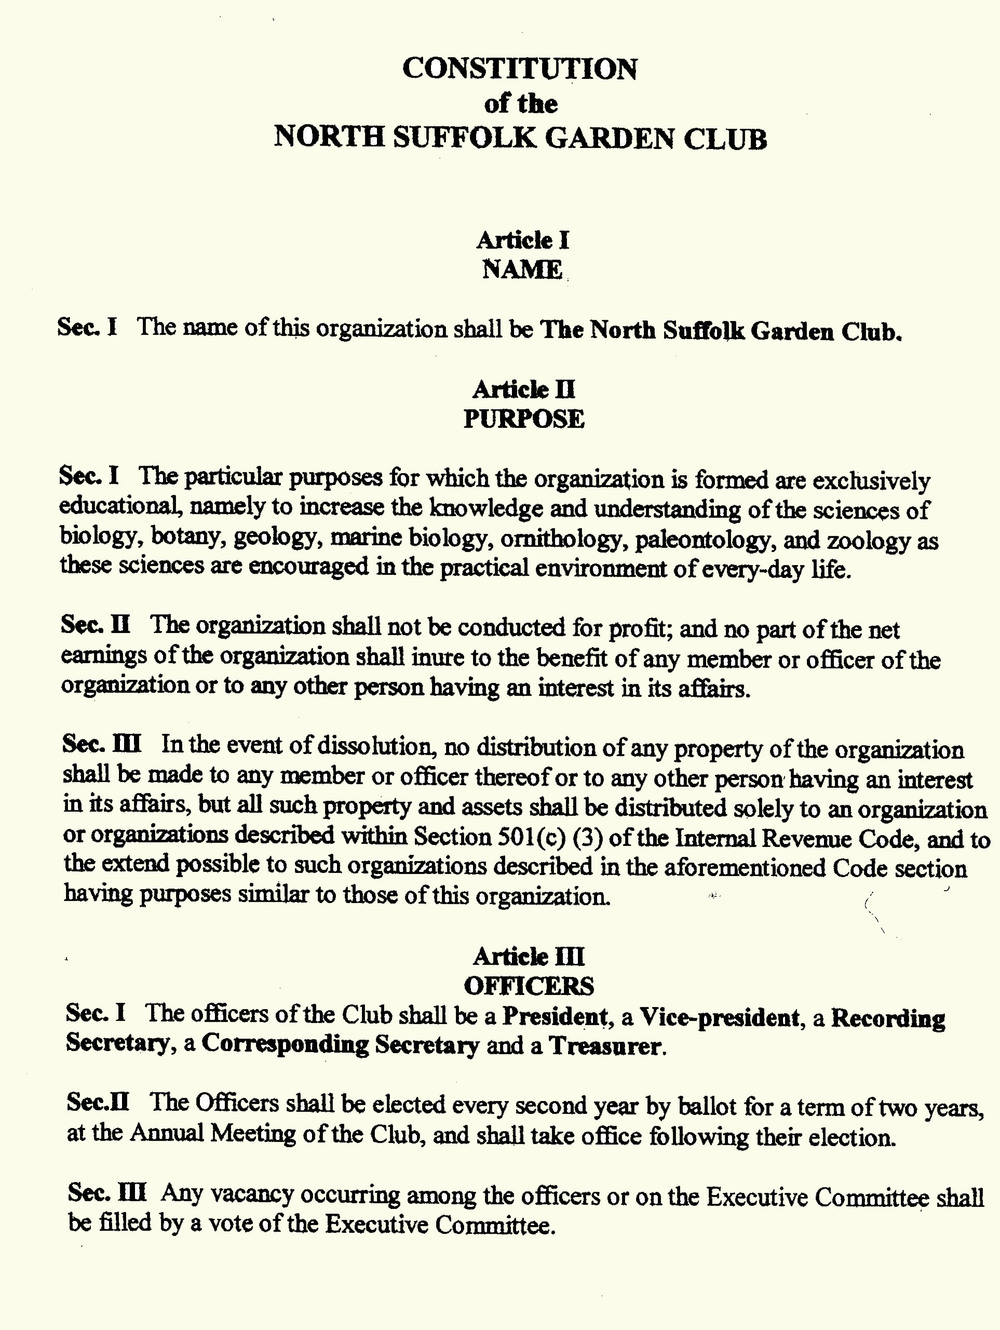 NSGC Constitution003_Page_1.jpg